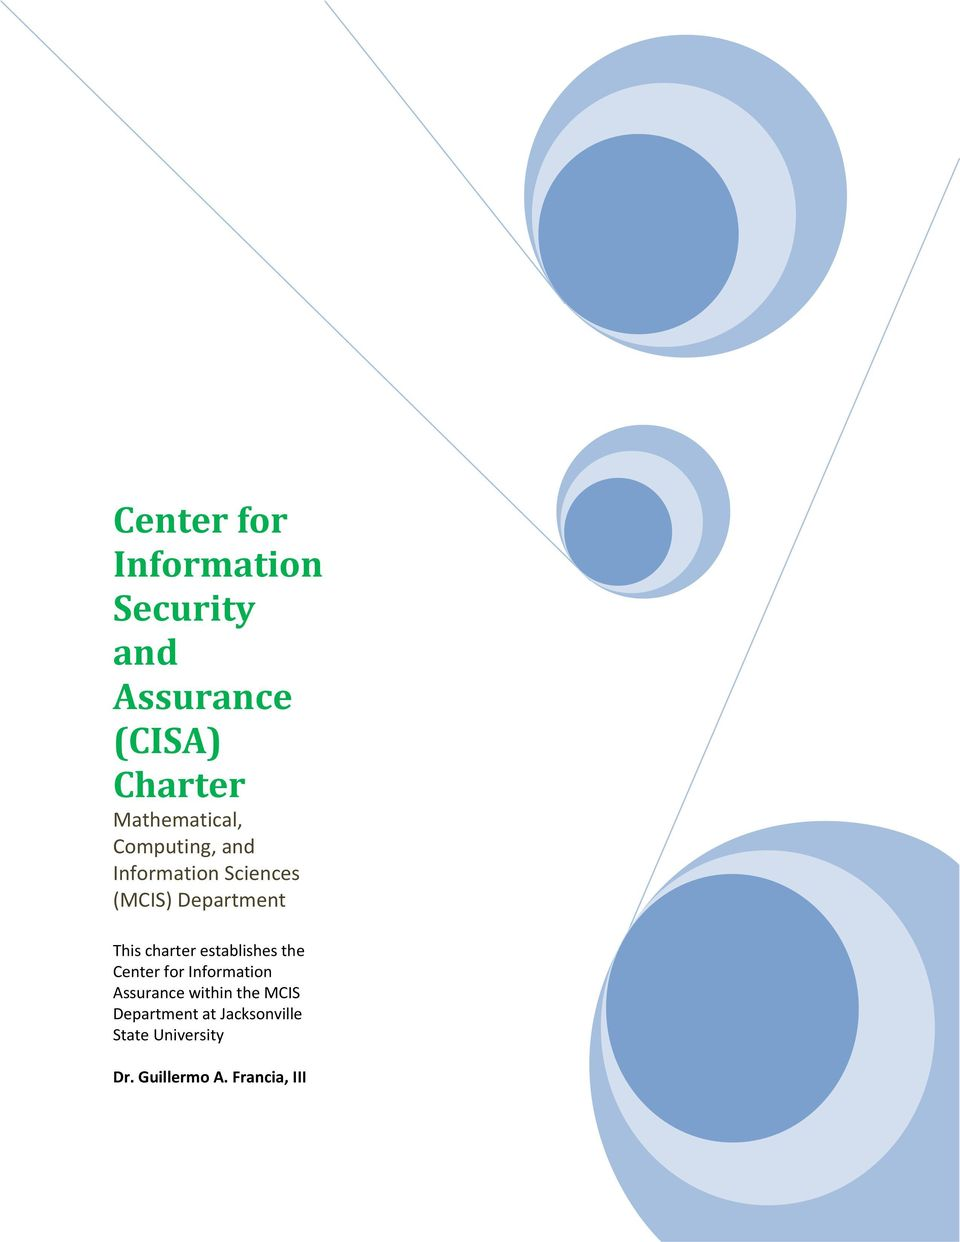 This charter establishes the Center for Information Assurance within